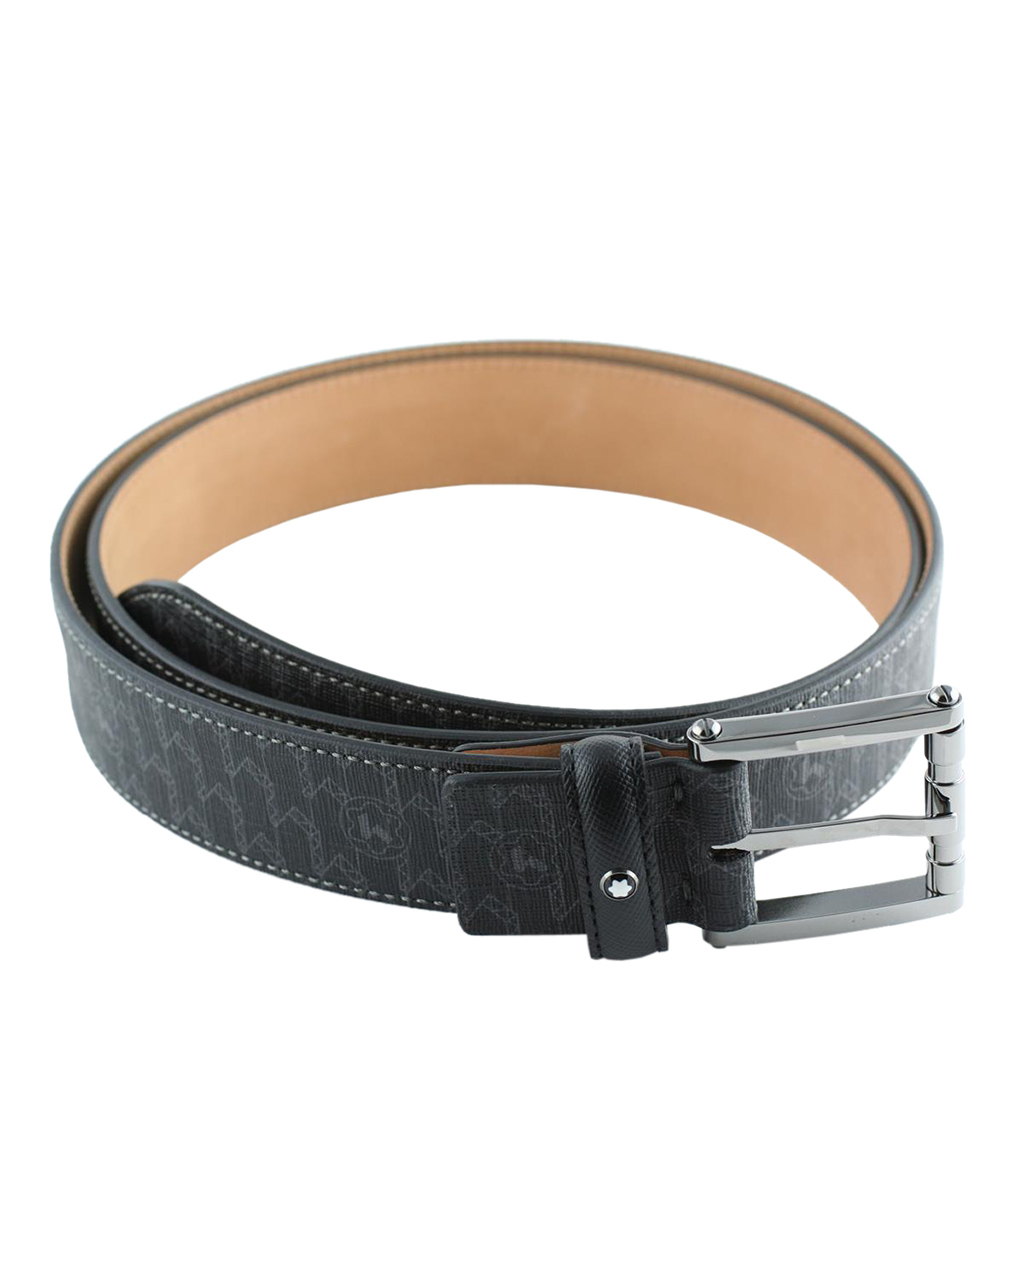 Montblanc Signature Saffiano Leather Black Belt 111099   brands montblanc δερμάτινα είδη   αξεσουάρ